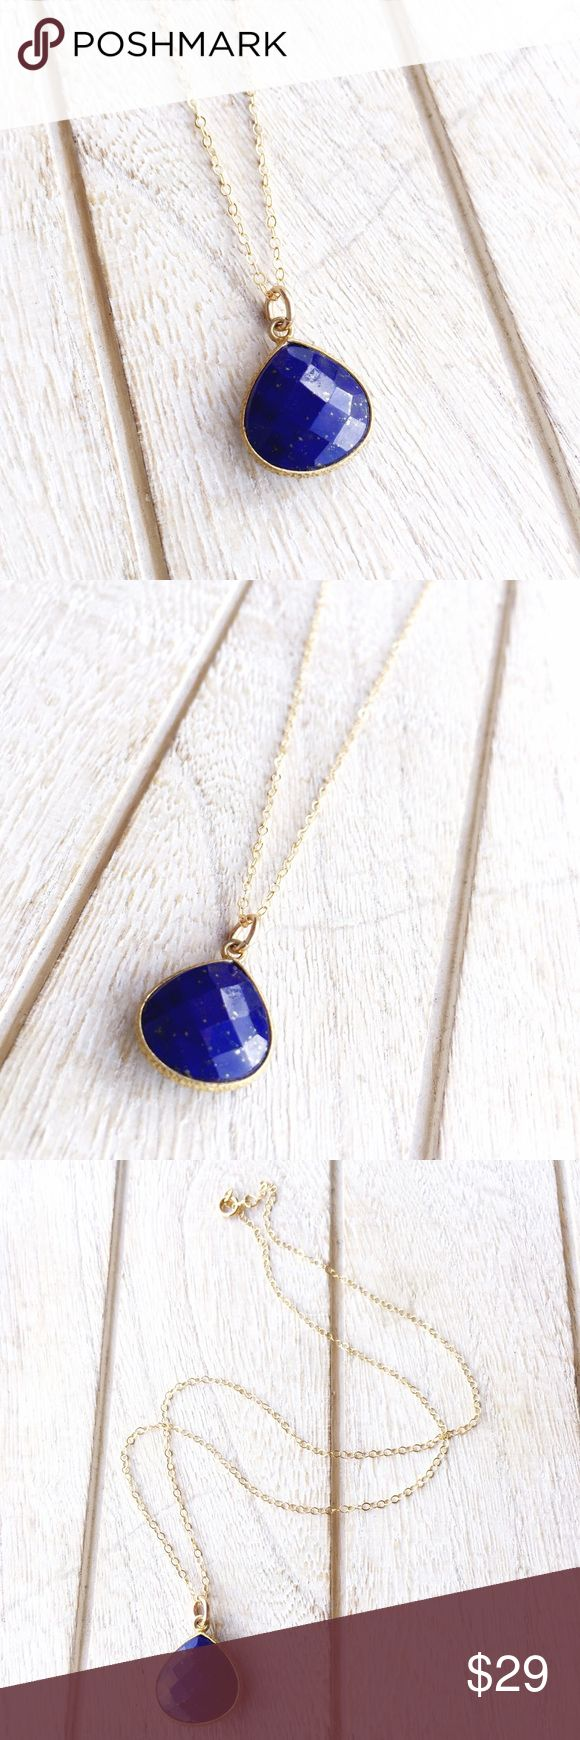 """Lapis Lazuli Necklace, Blue Stone Necklace A faceted Lapis Lazuli stone with gold specks is set in 24k gold vermeil bezel setting. Pendant hangs on a dainty 18k gold filled chain and closes with a spring clasp. 16"""" long. Mystica Jewelry Necklaces"""